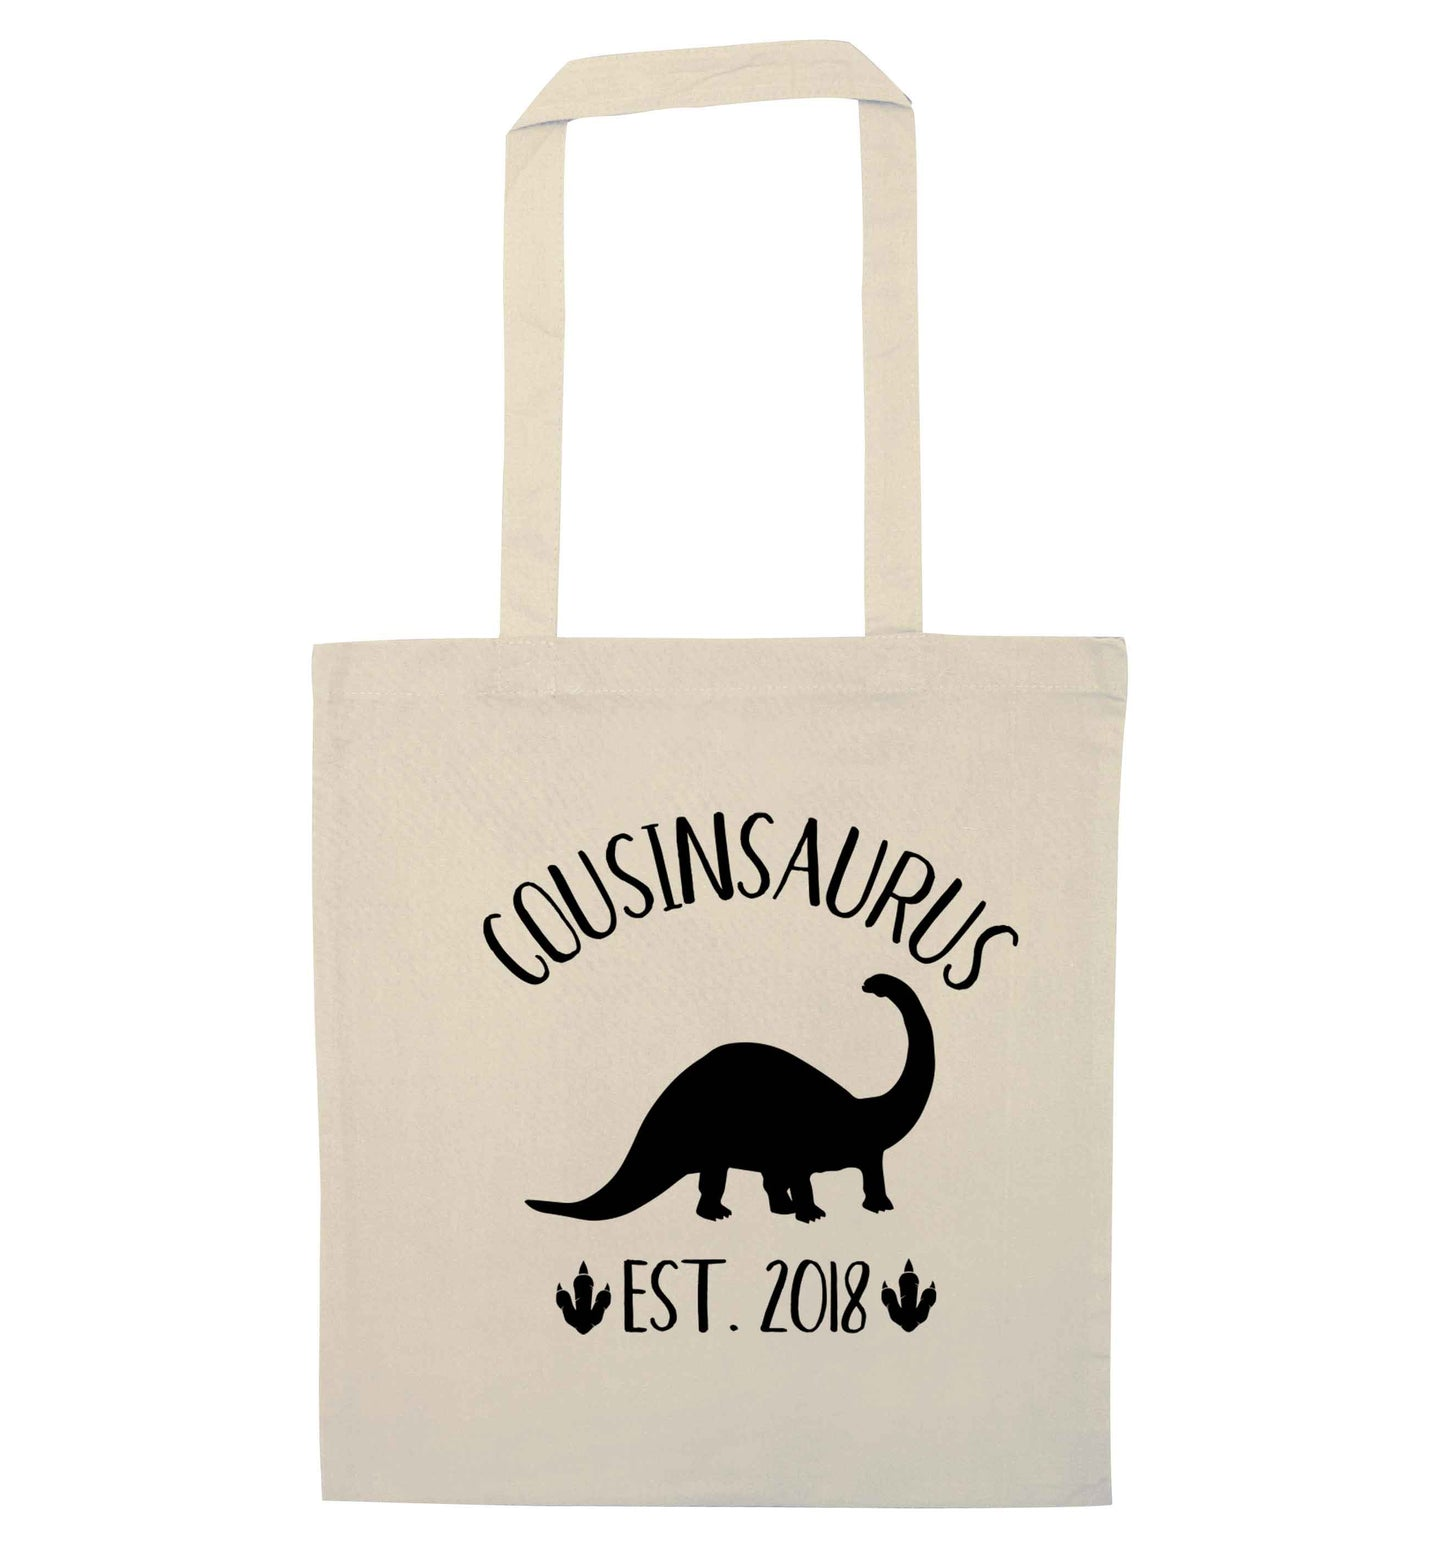 Personalised cousinsaurus since (custom date) natural tote bag